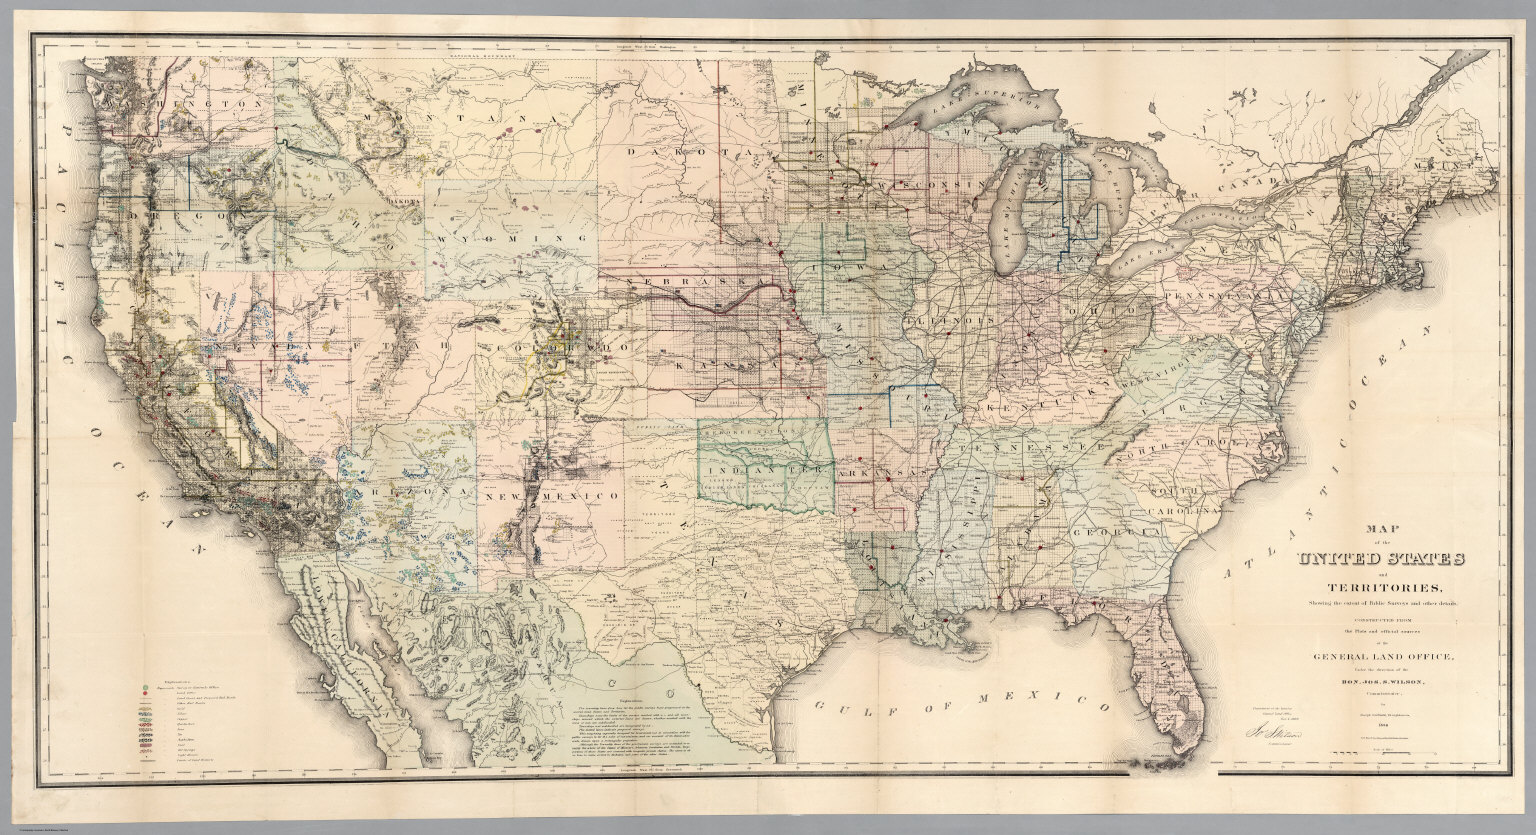 Map Of The United States And Territories 1869 David Rumsey